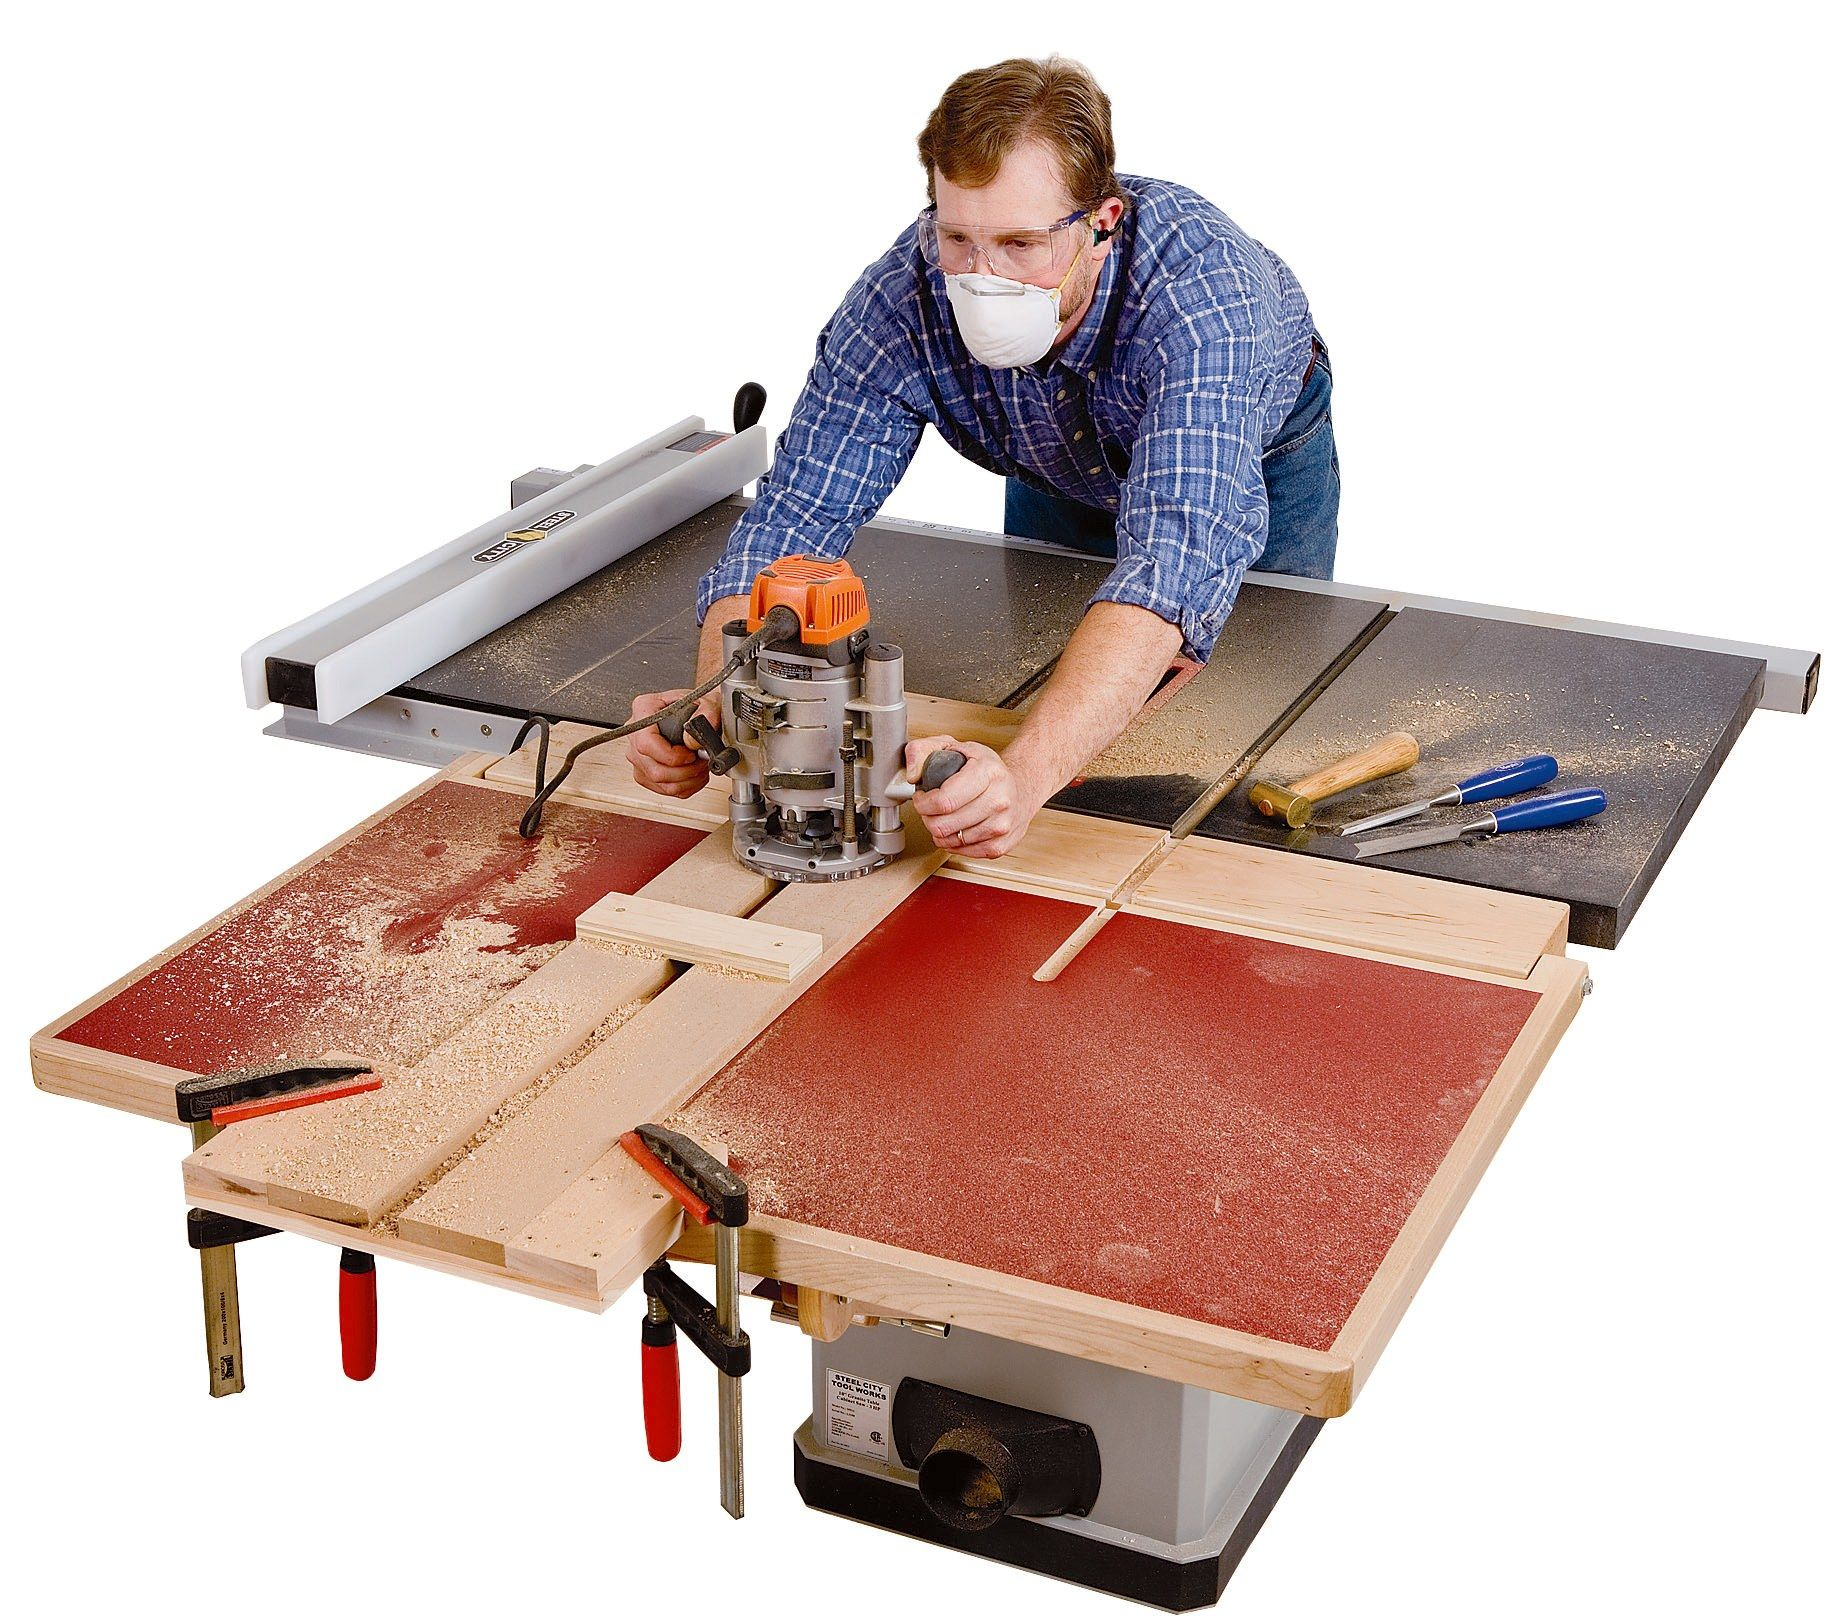 Build a folding outfeed table to mount on your table saw stand build a folding outfeed table to mount on your table saw stand greentooth Image collections